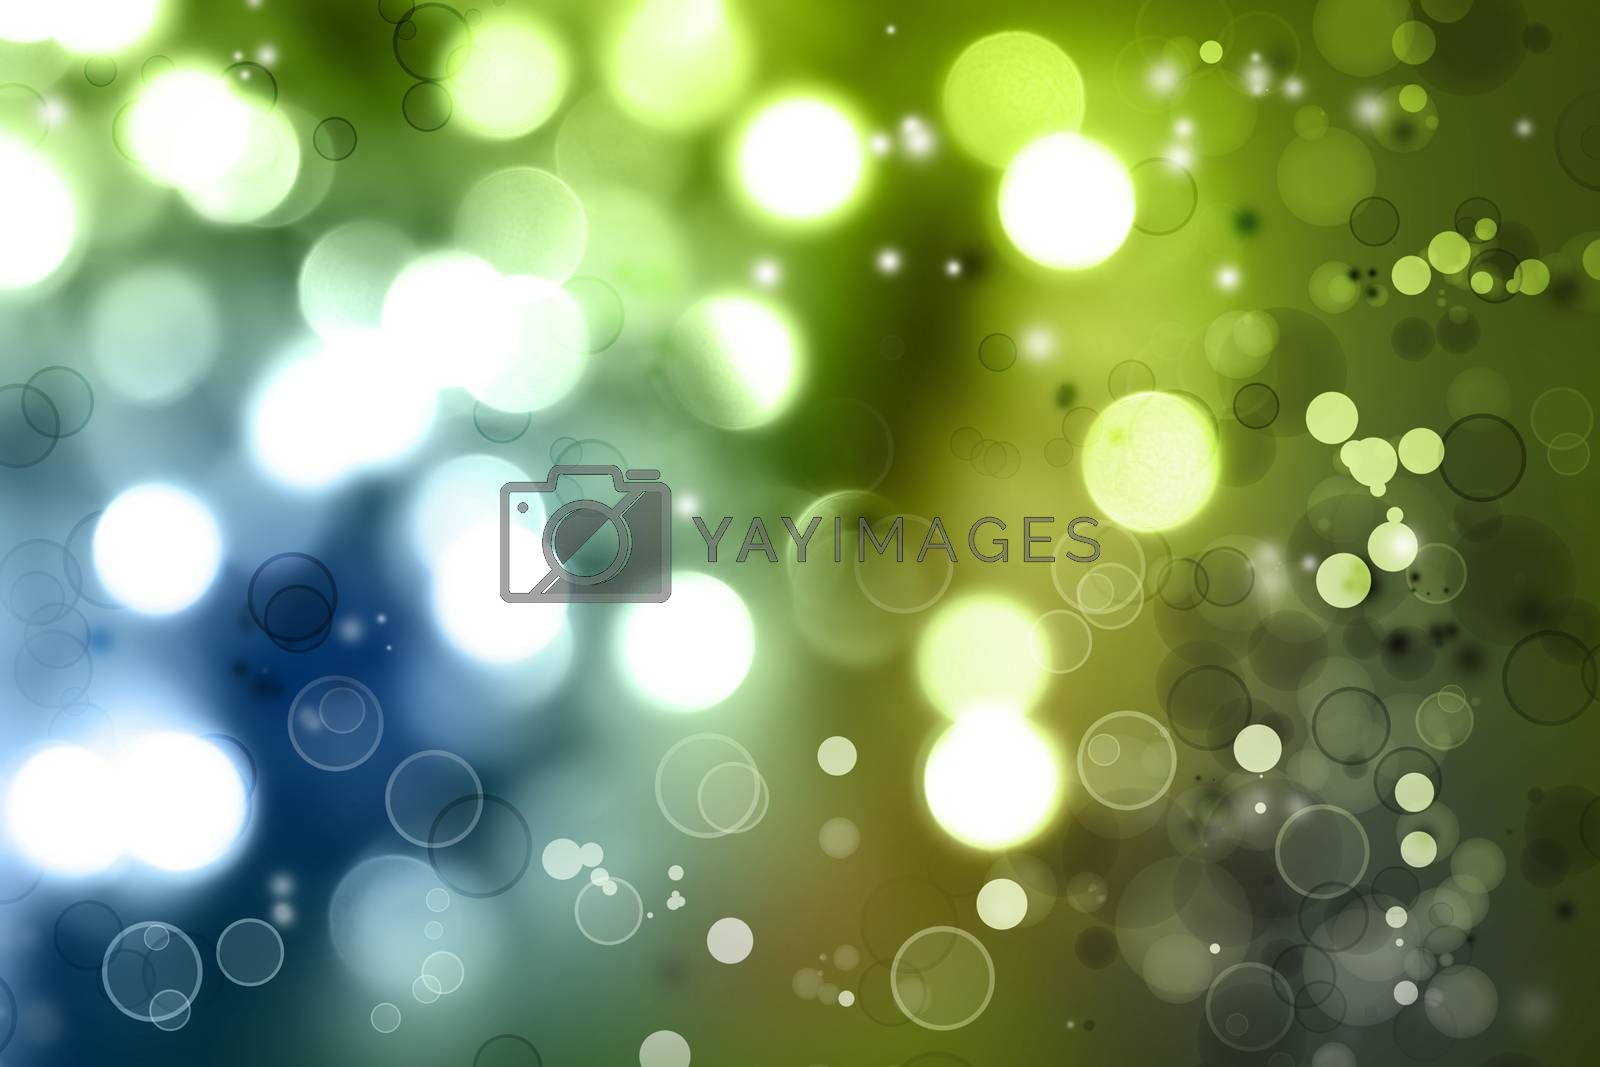 Abstract blue and green tone background